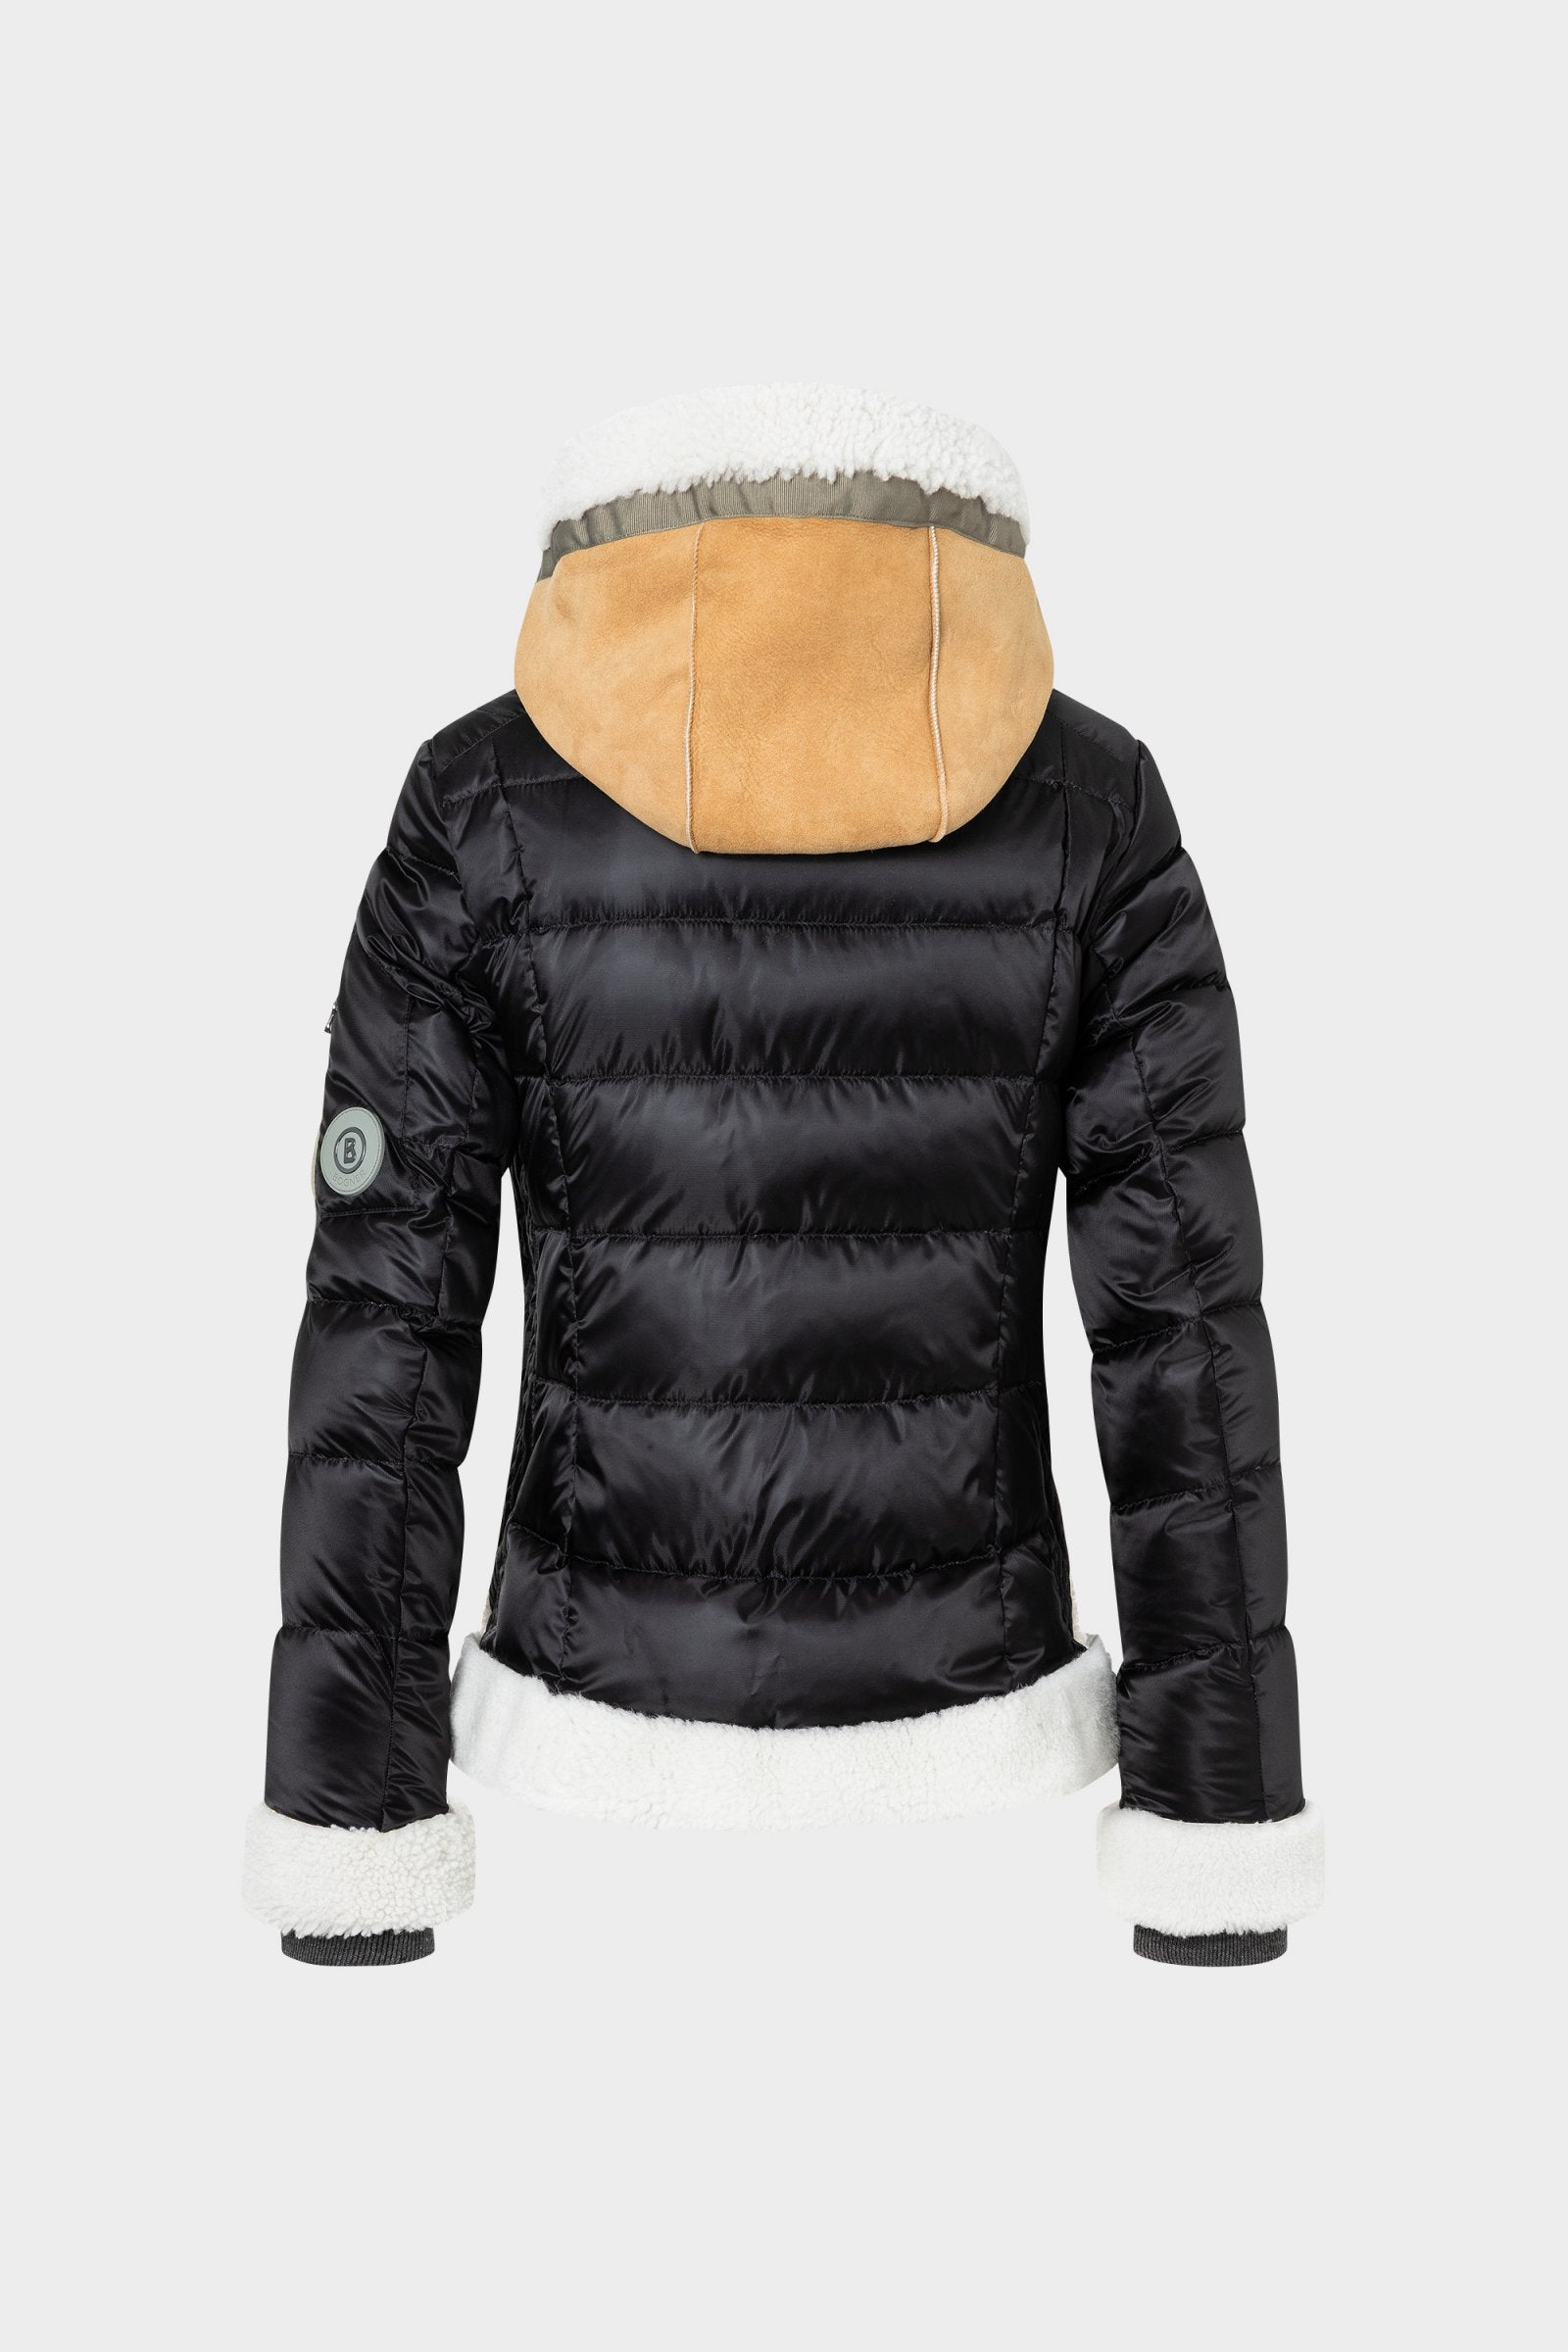 RIANA-LD Shearling Ski Jacket - Black